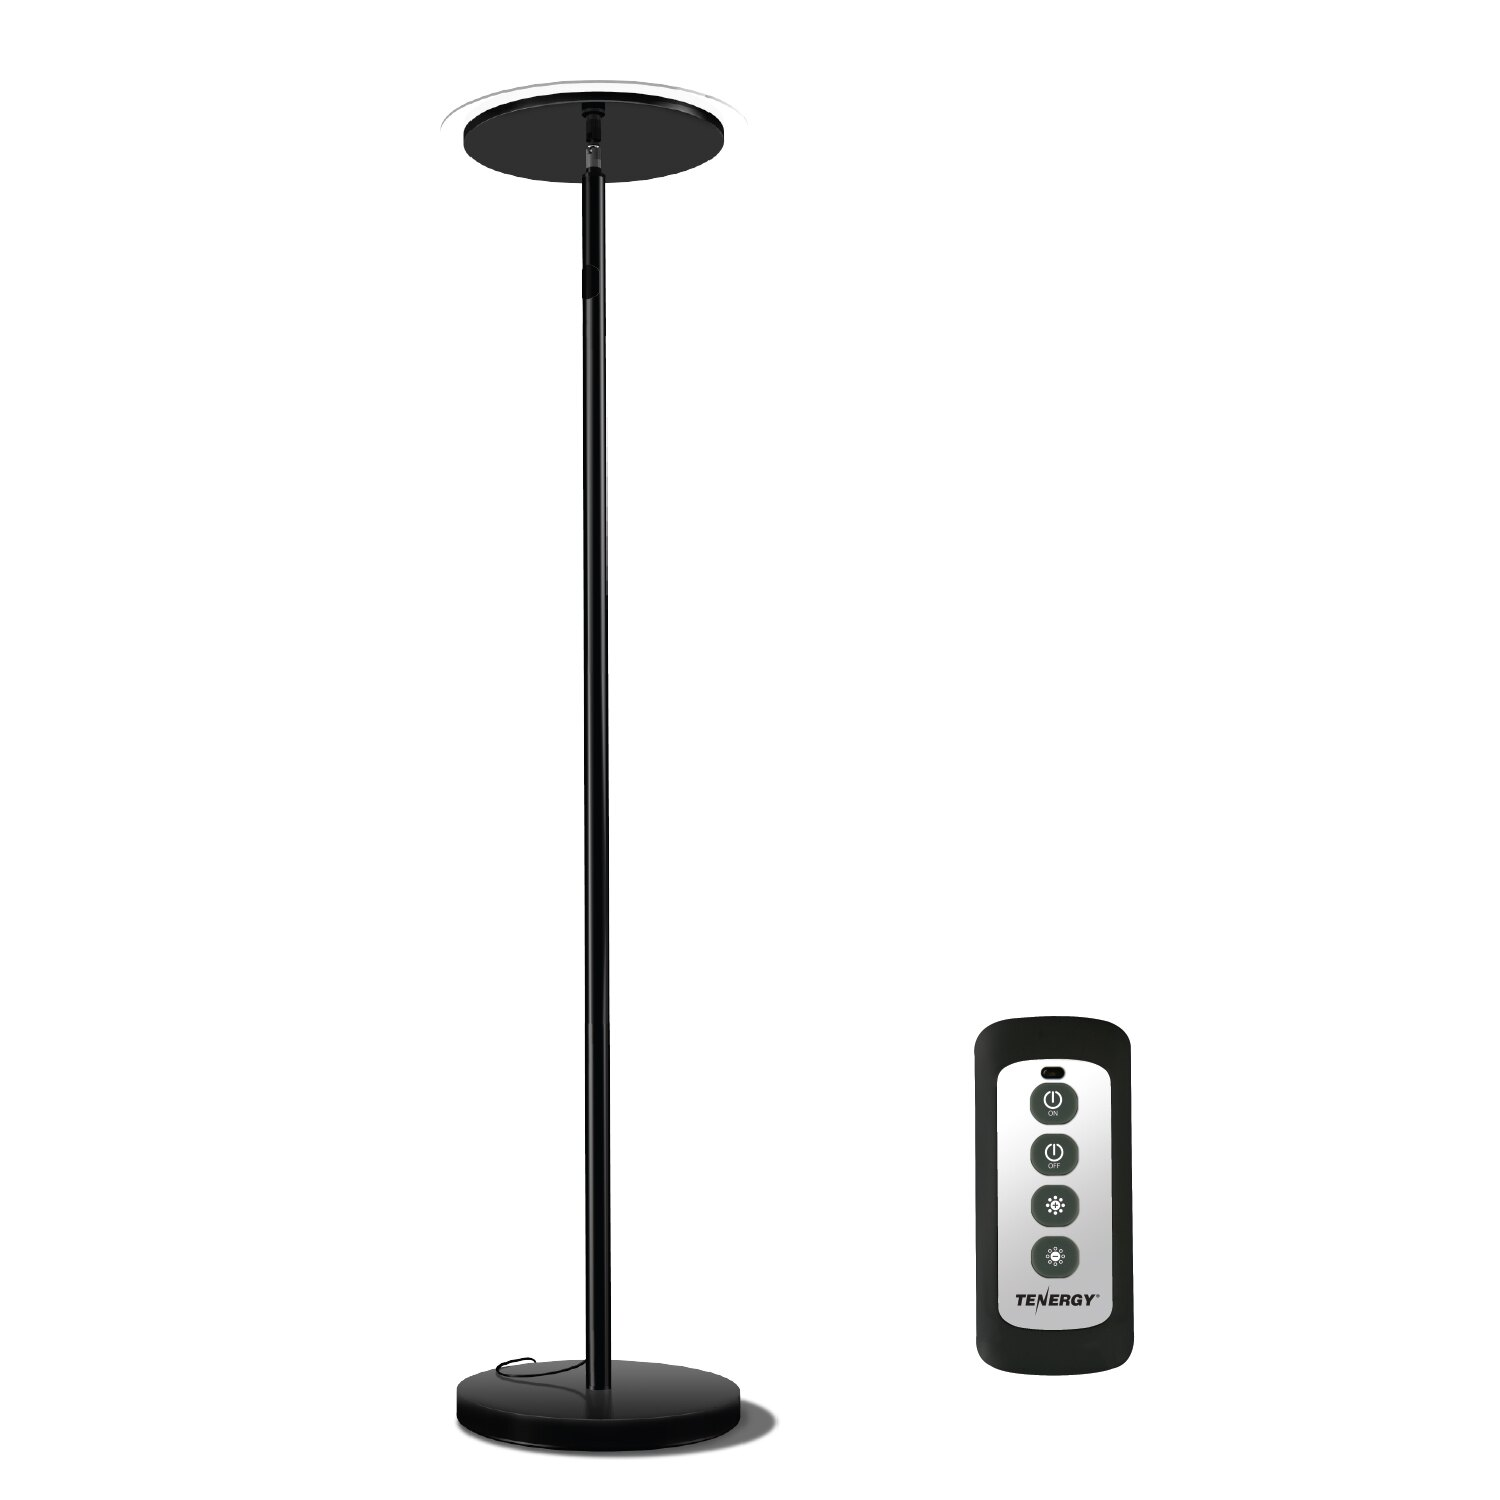 Tenergy Tenergy 70 Torchiere Dimmable LED Floor Lamp 30W